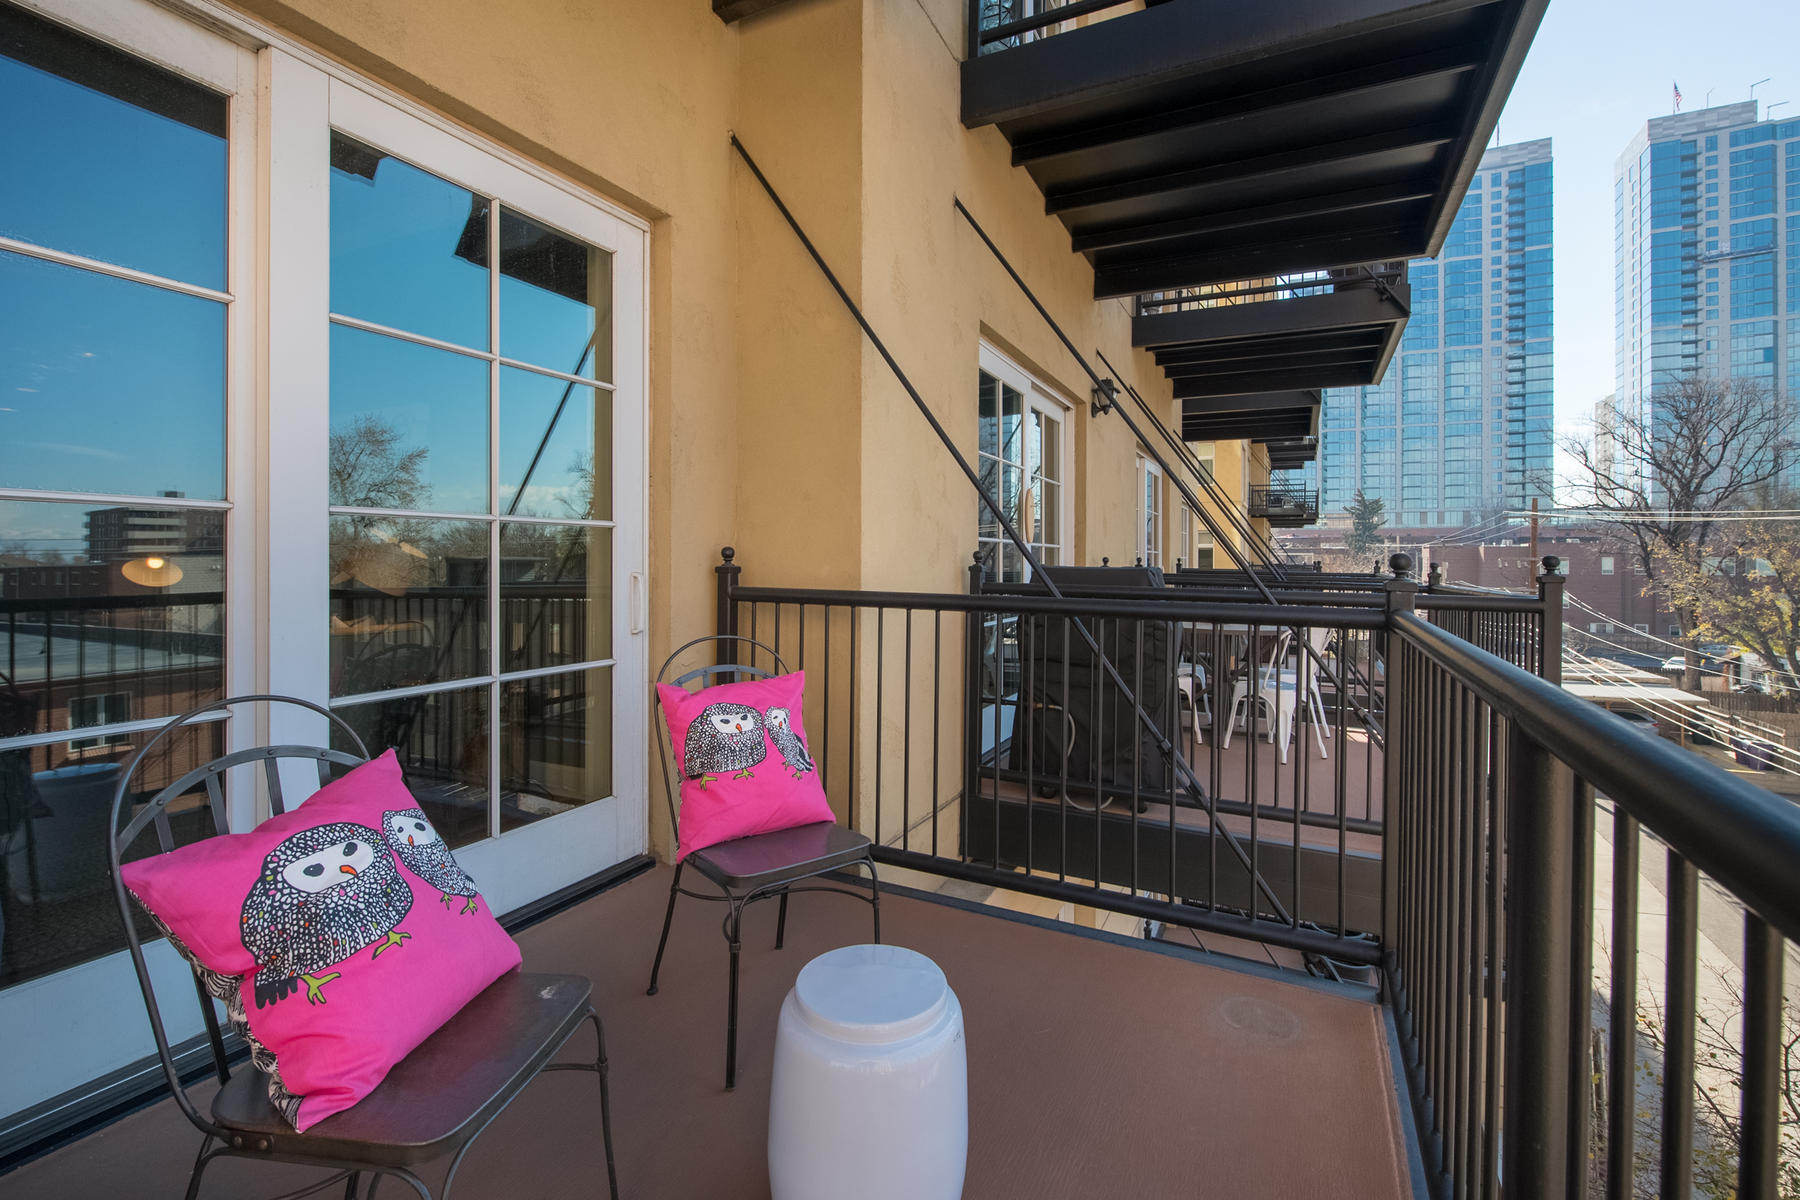 Additional photo for property listing at Incredible Opportunity! 25 N Downing St #1-305 Denver, Colorado 80218 United States